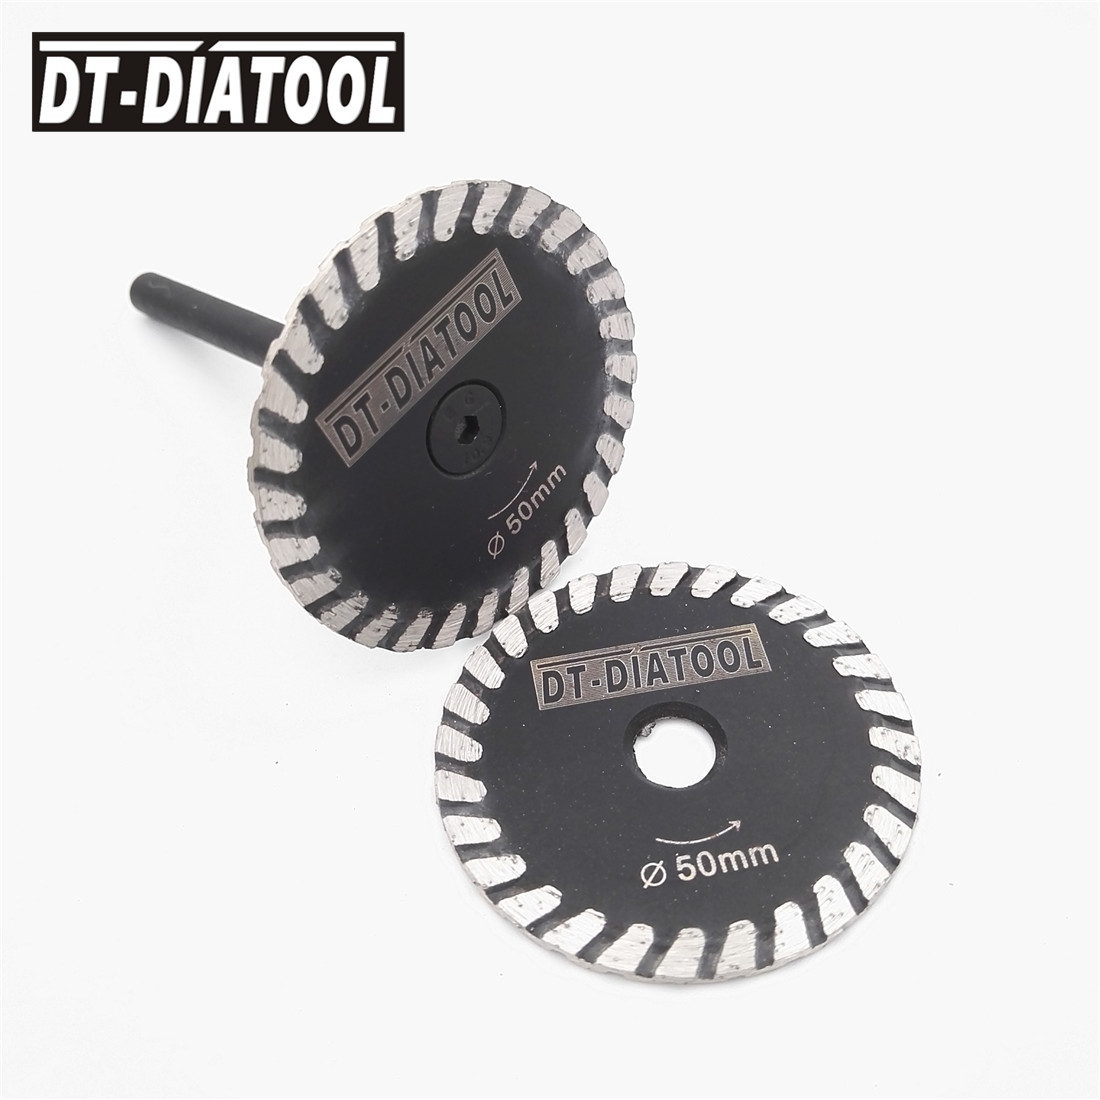 DT-DIATOOL 2pcs Mini Diamond Saw Blade Removable 6mm Shank Turbo Cutting Disc For Granite Marble Stone Concrete Grinding Wheel